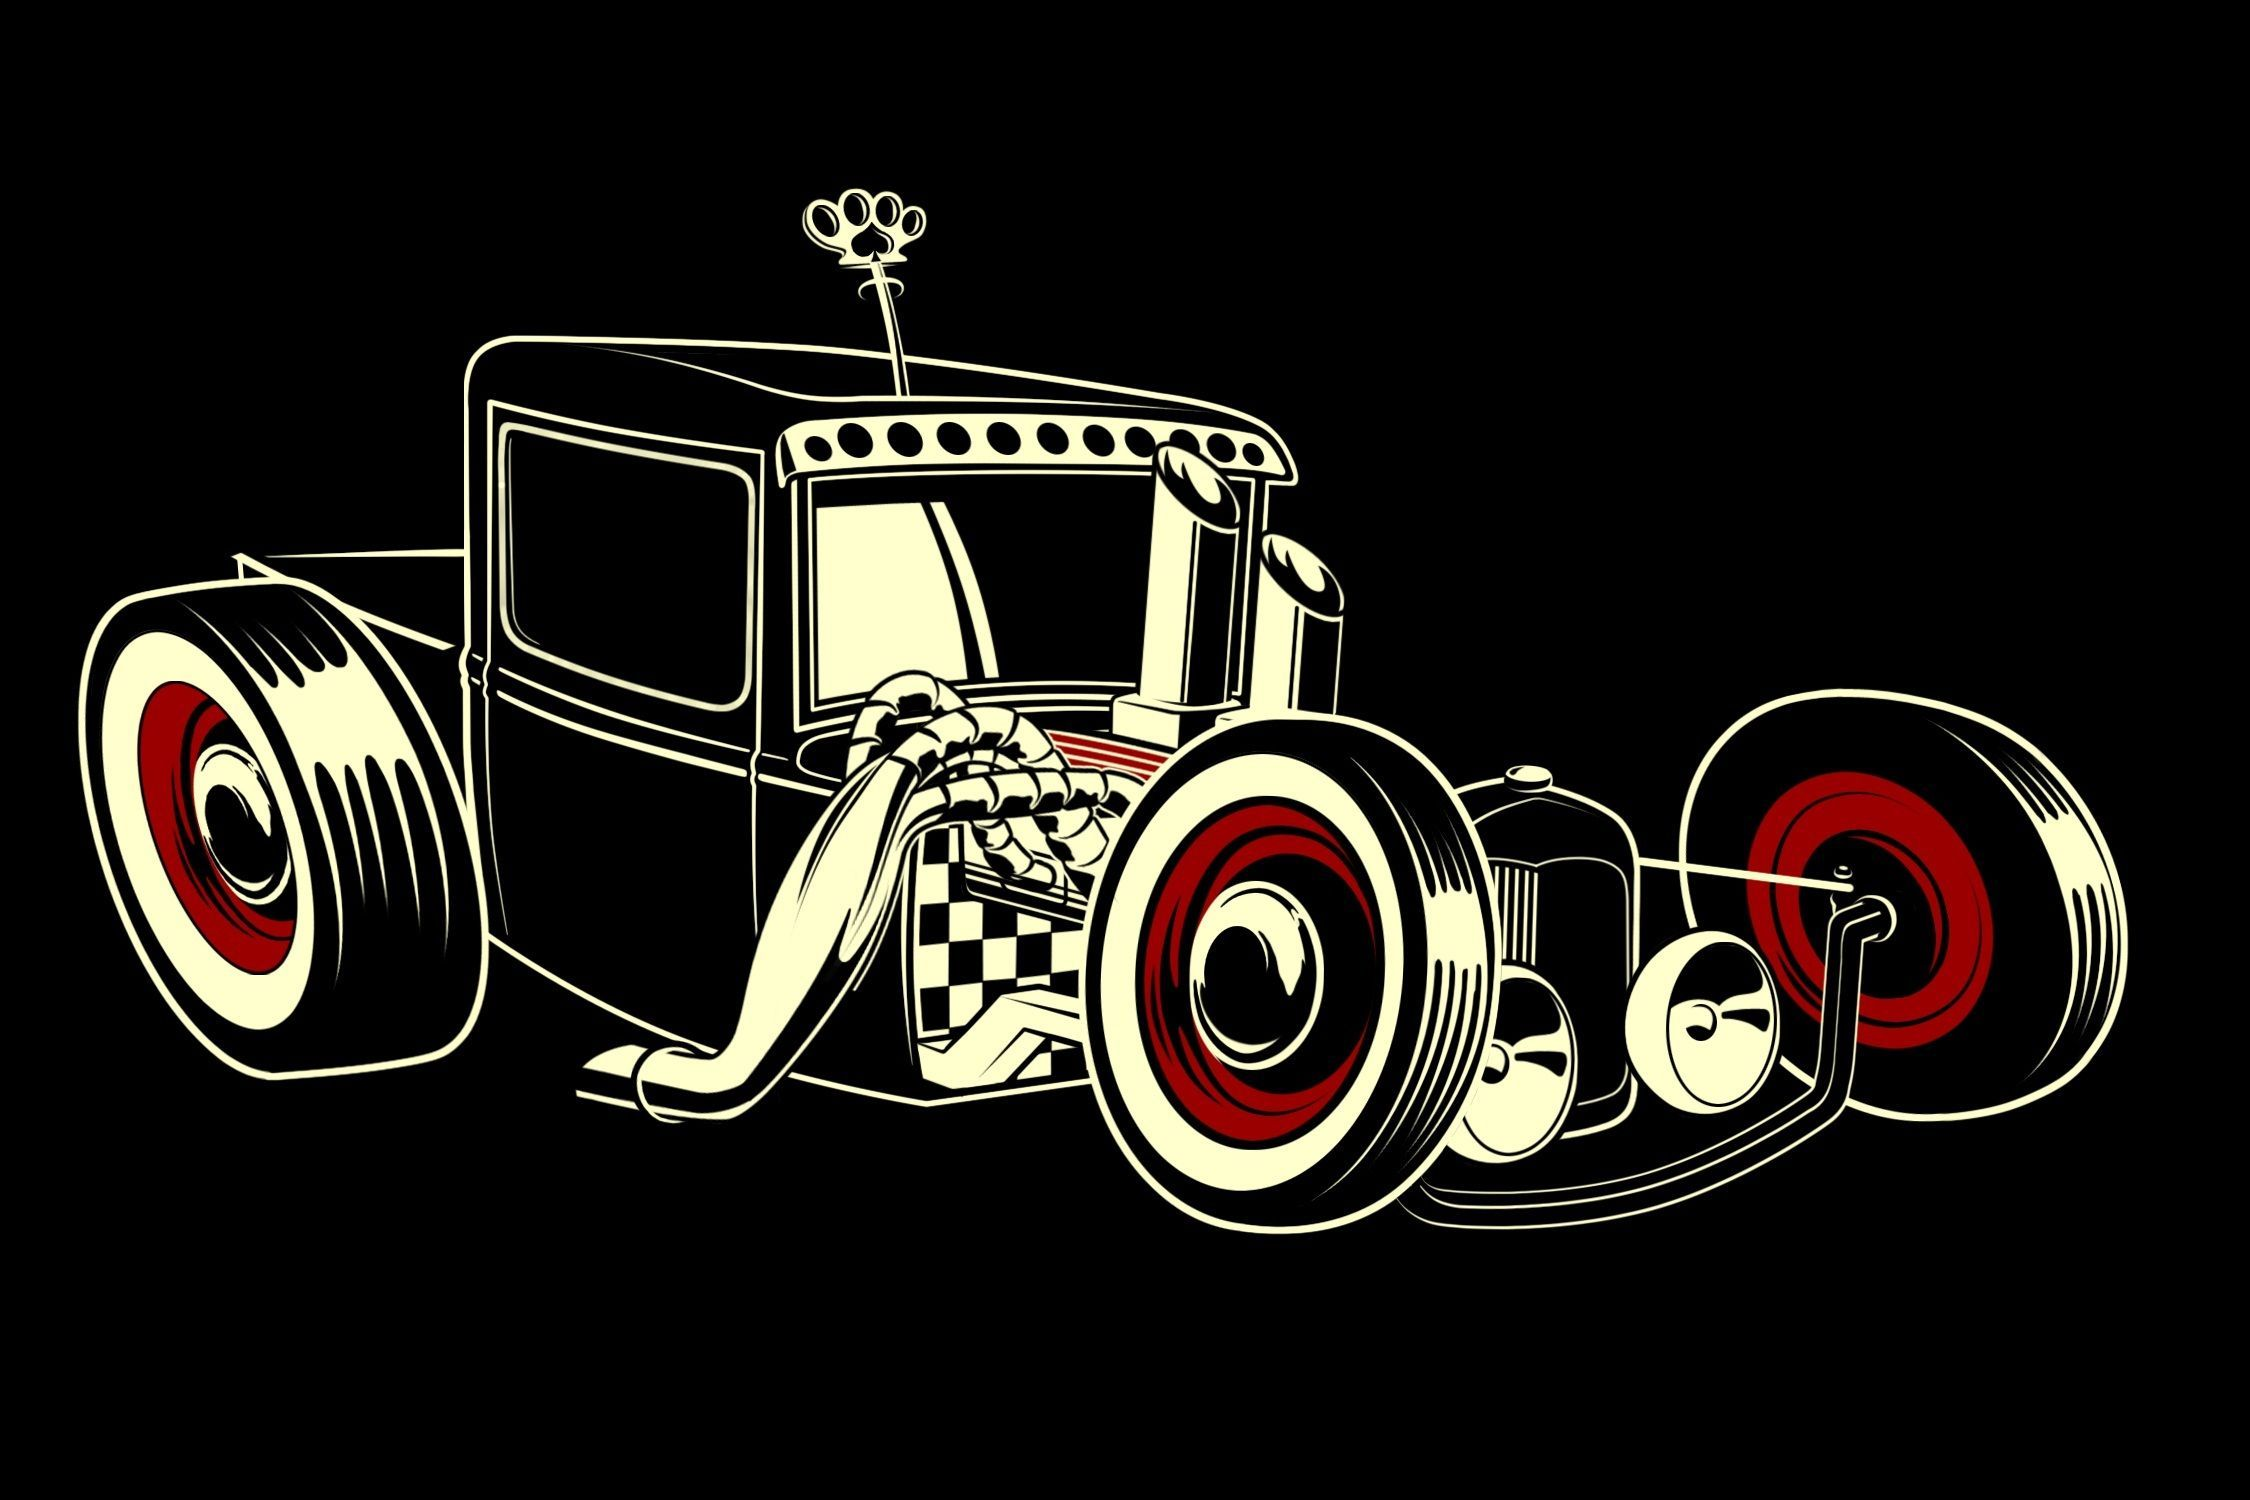 Hot Rod Art Wallpapers On Wallpaperdog